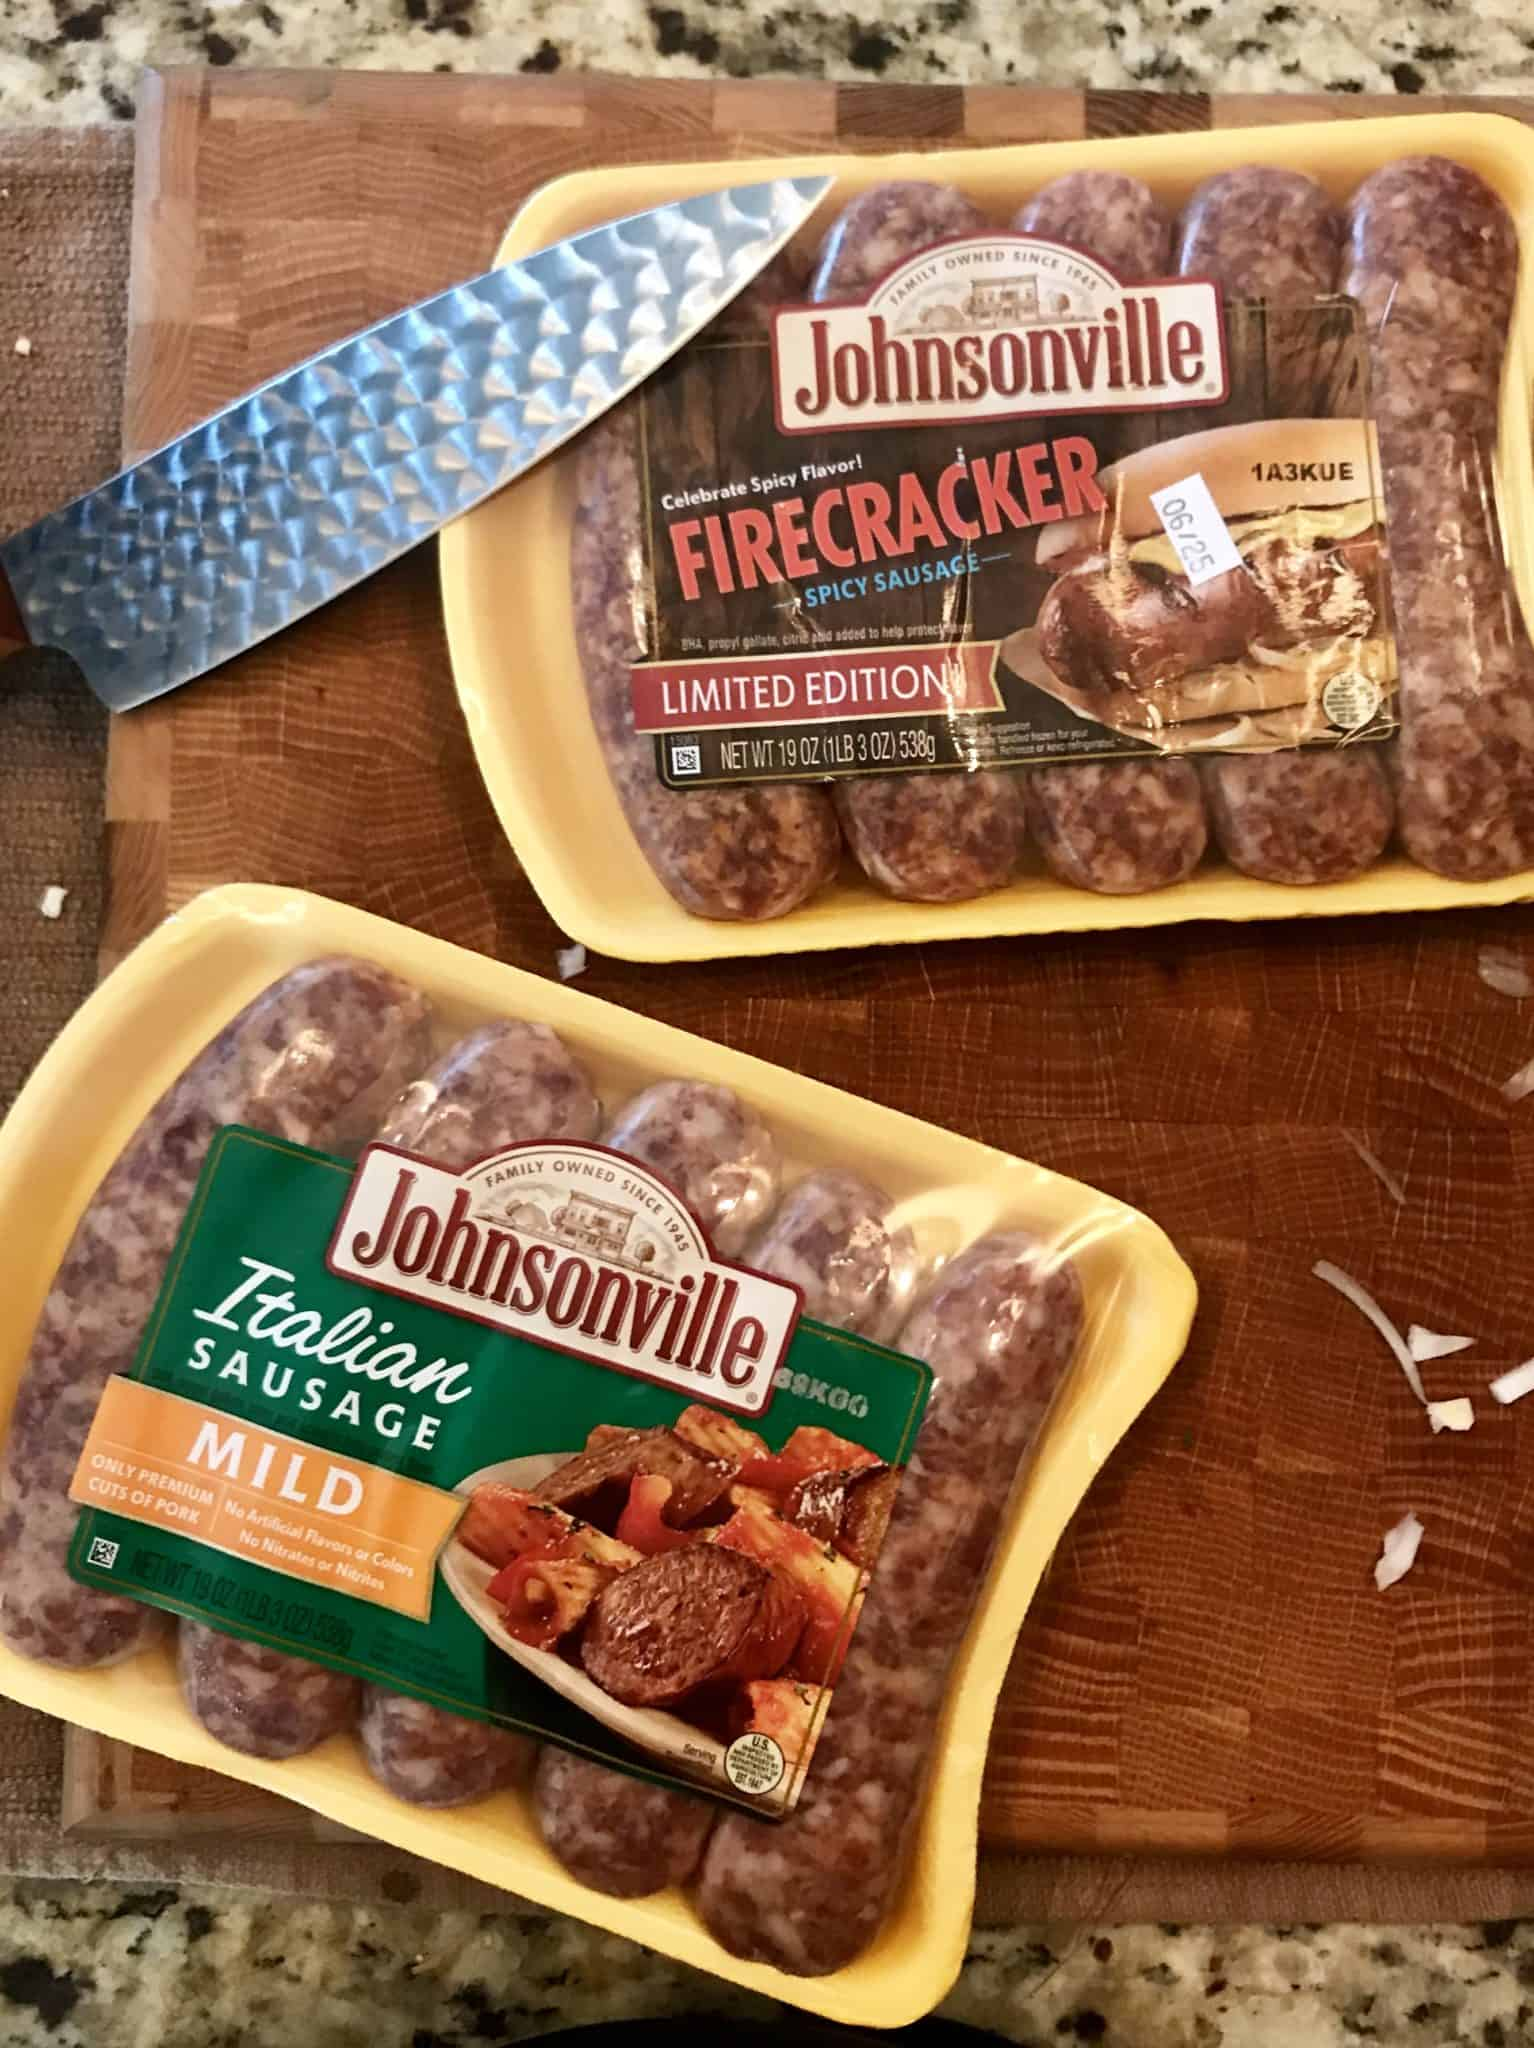 Johnsonville firecracker and mild Italian sausage packs on wooden cutting board overhead shot